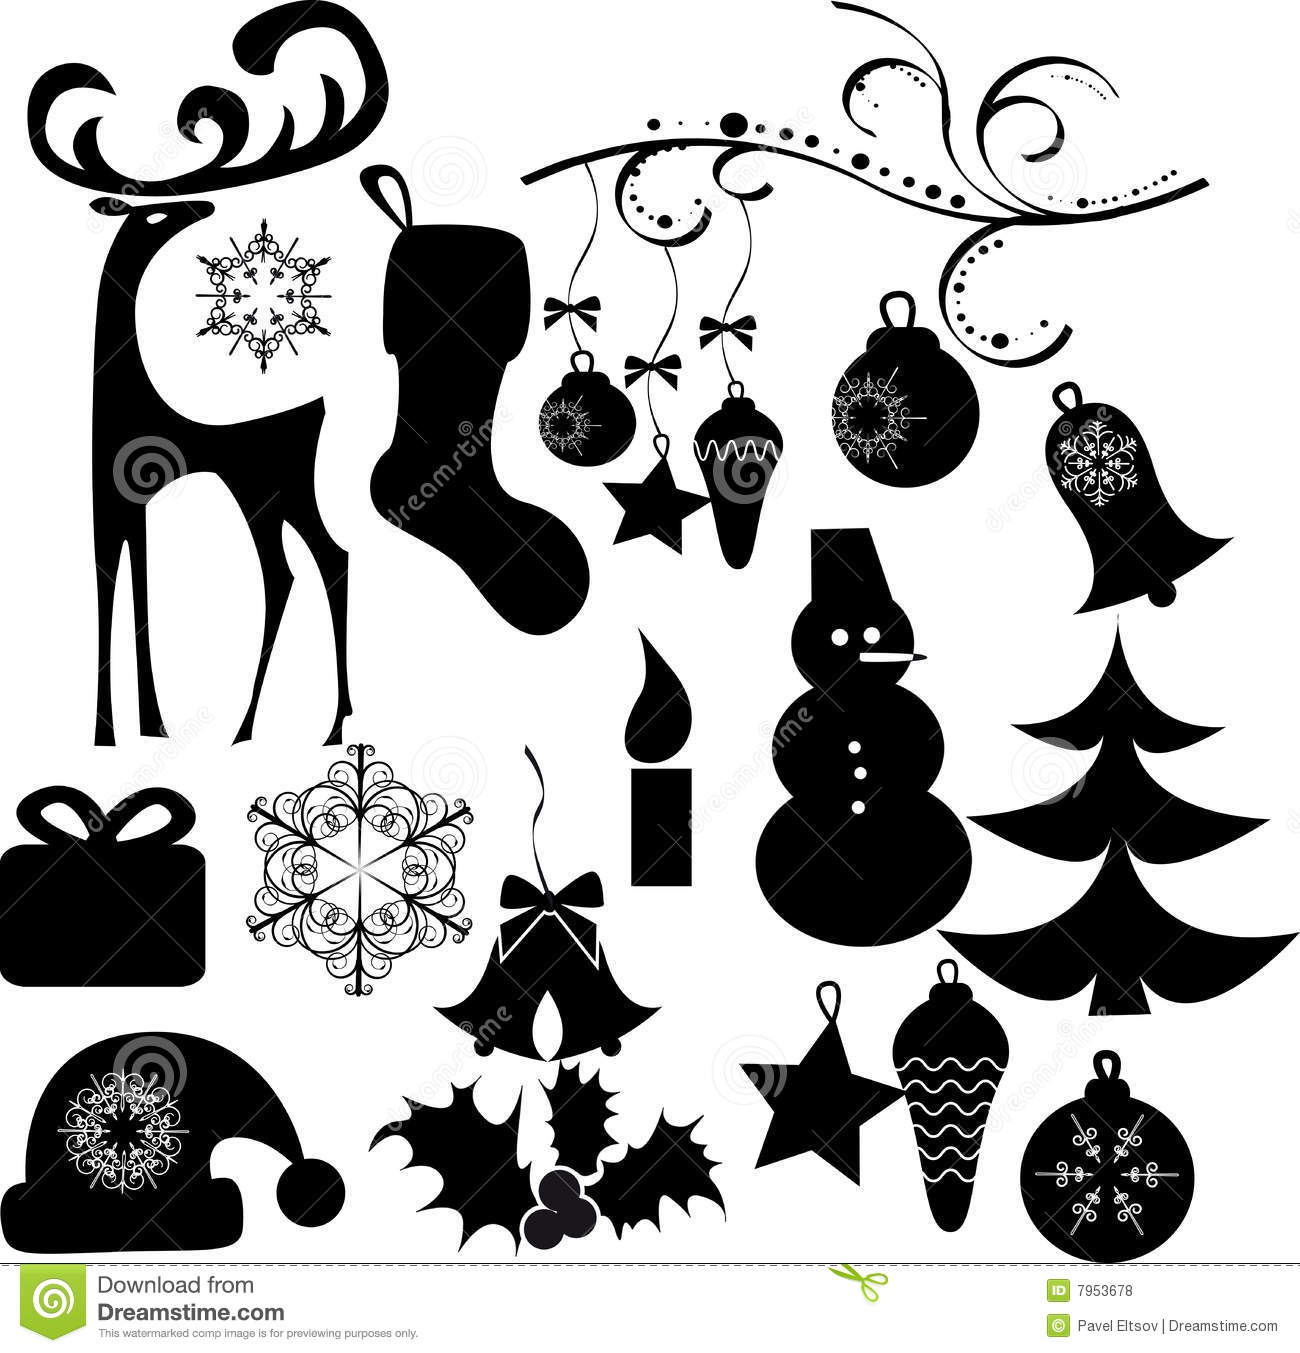 Free download christmas clipart png Download christmas clip art free - ClipartFest png